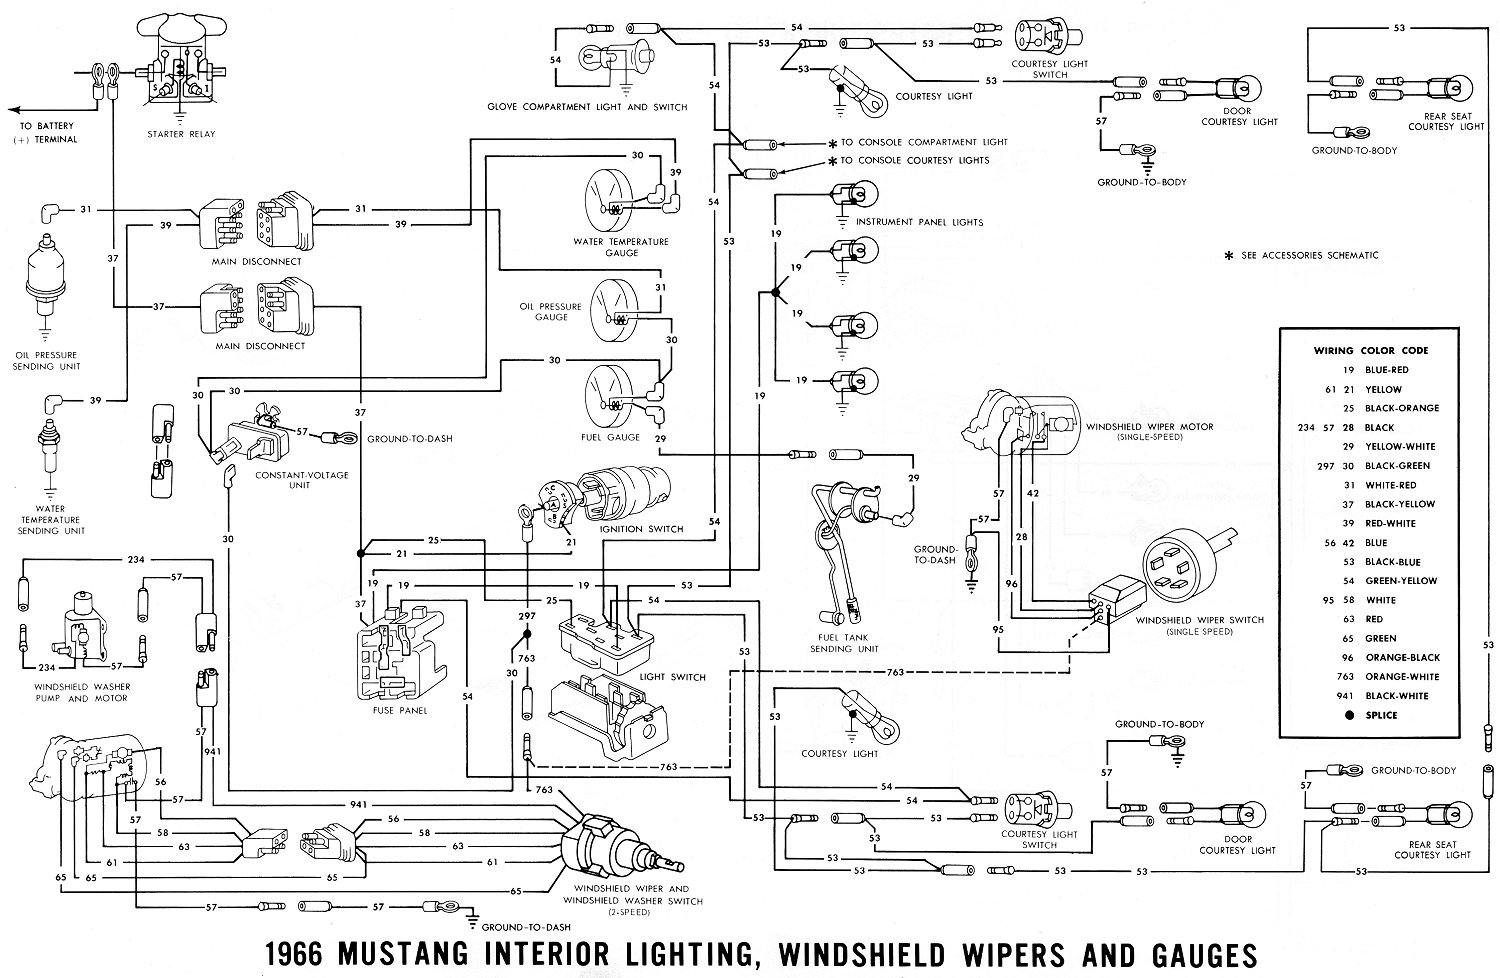 1966 mustang wiring diagrams average joe restoration rh averagejoerestoration com  1966 mustang gt wiring diagram